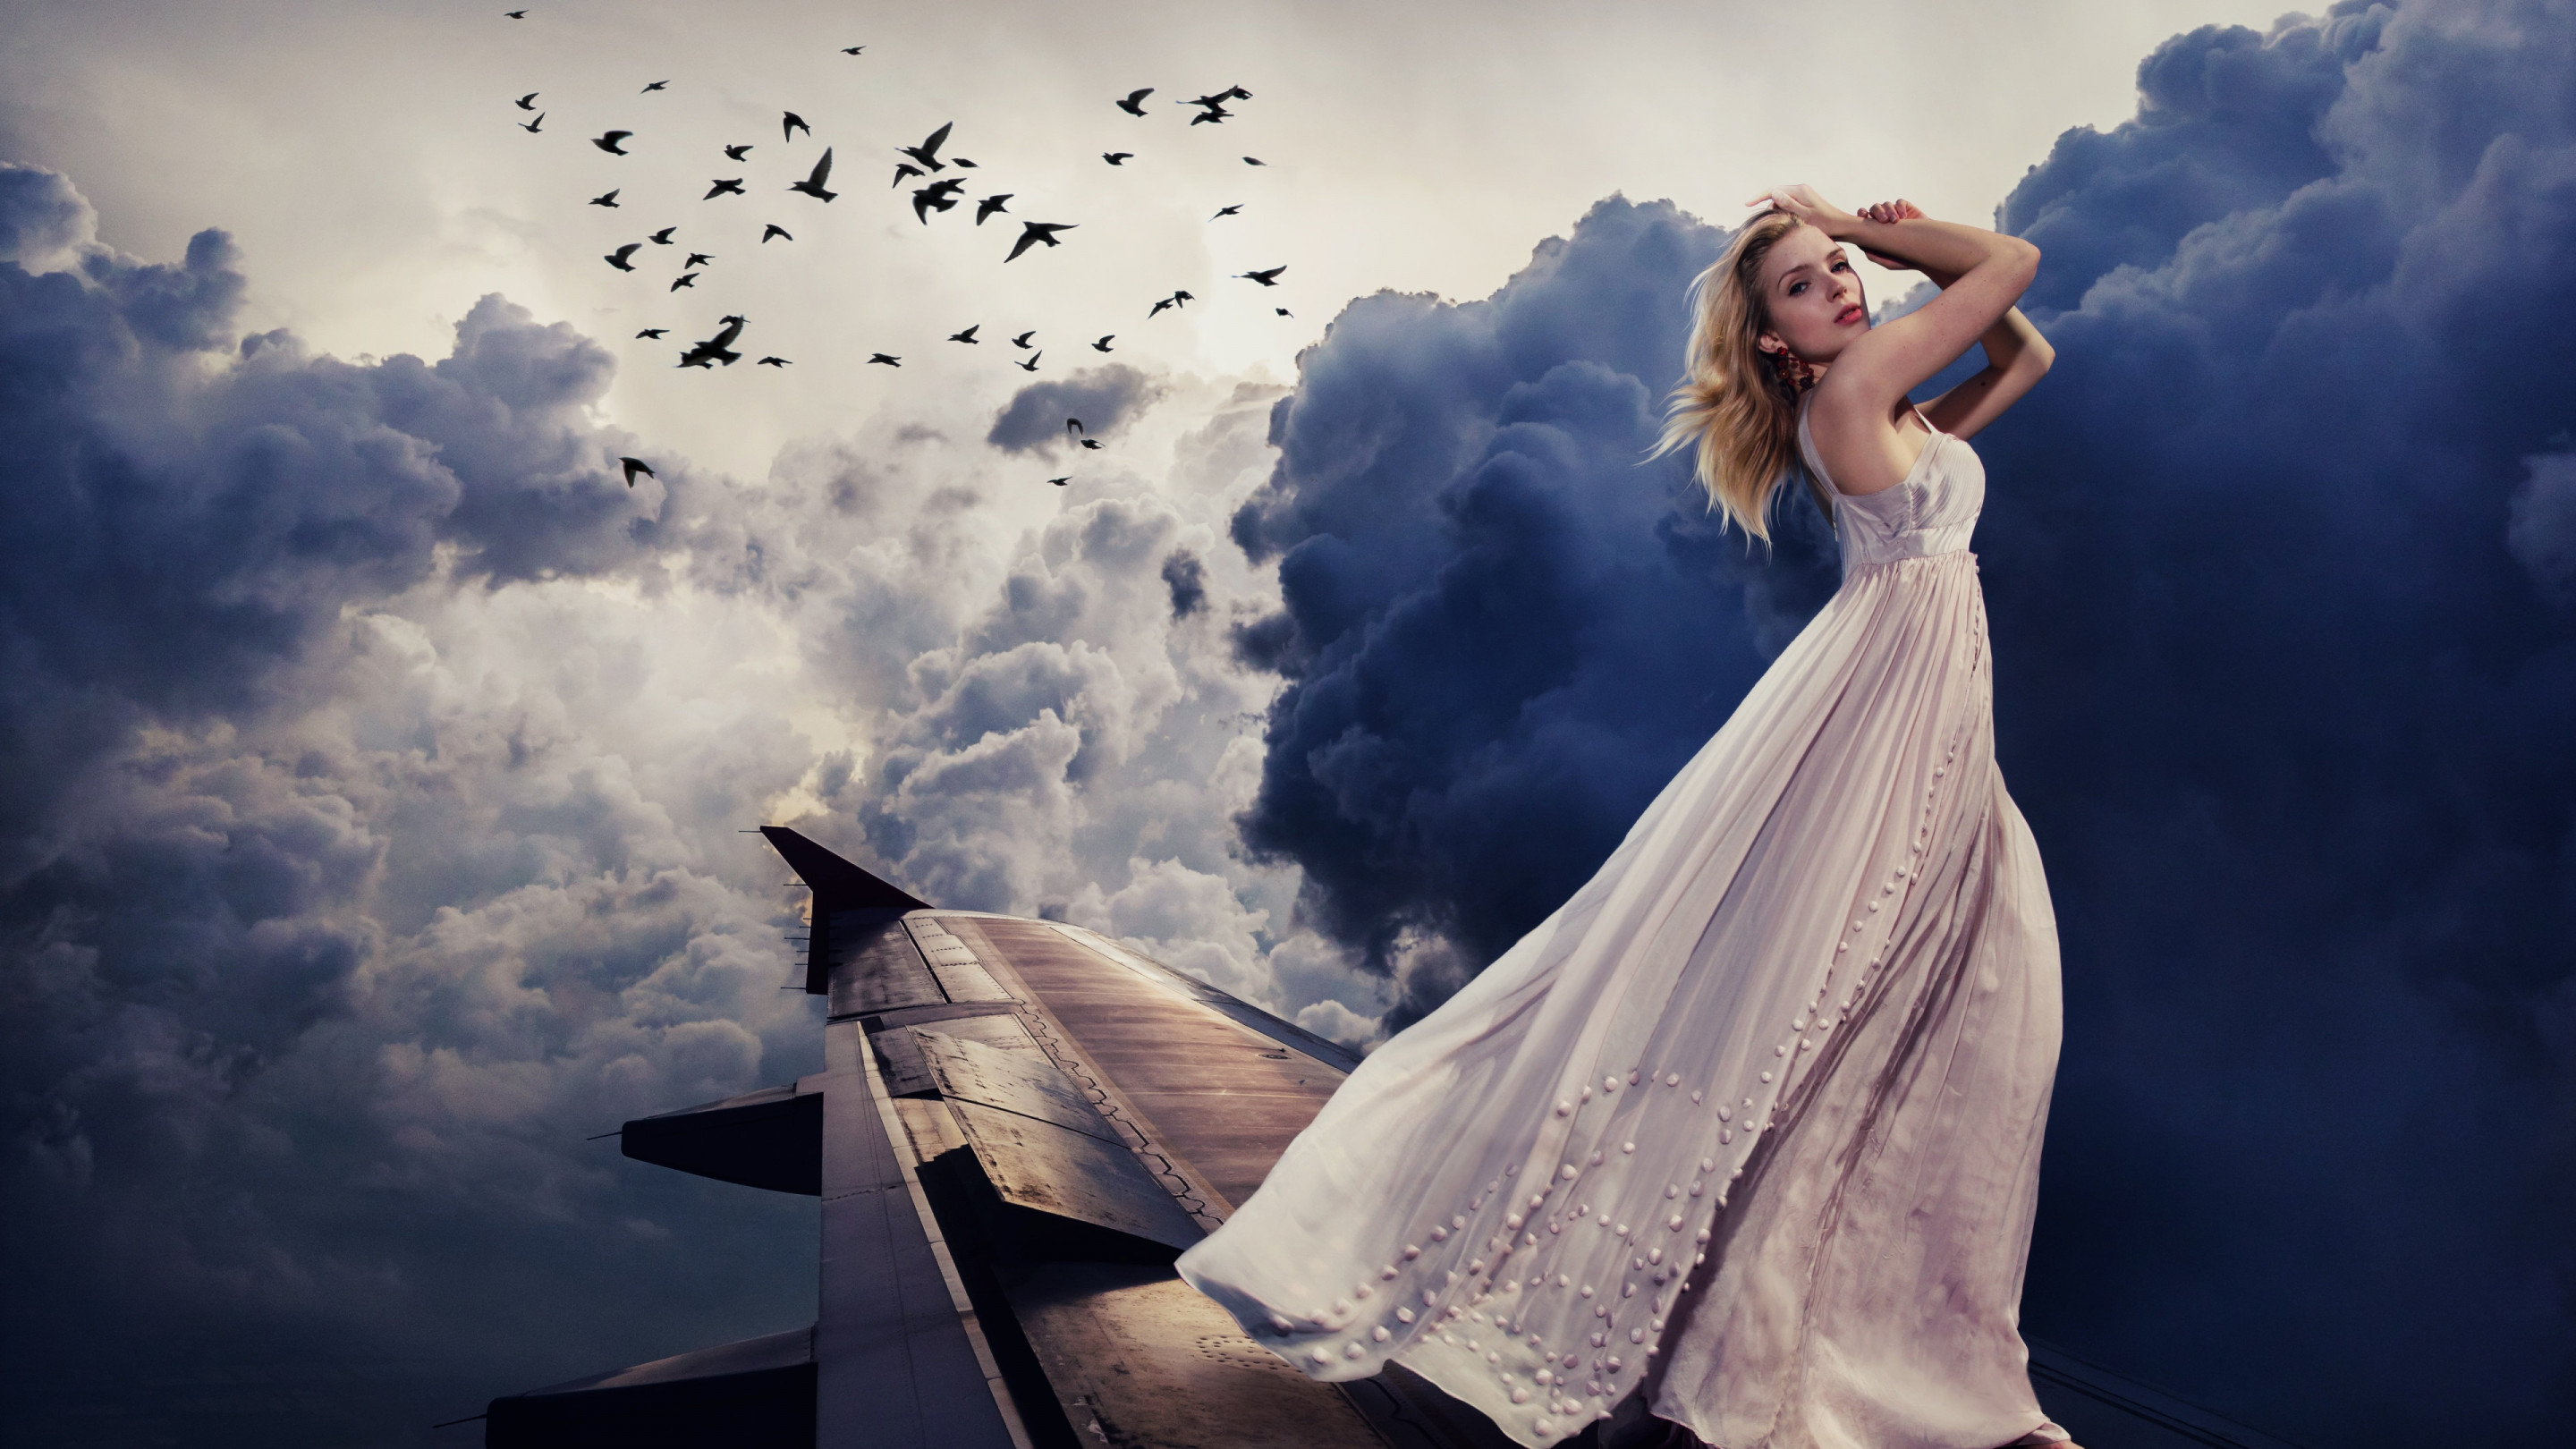 Beautiful girl on the airplane wing wallpaper 2880x1620